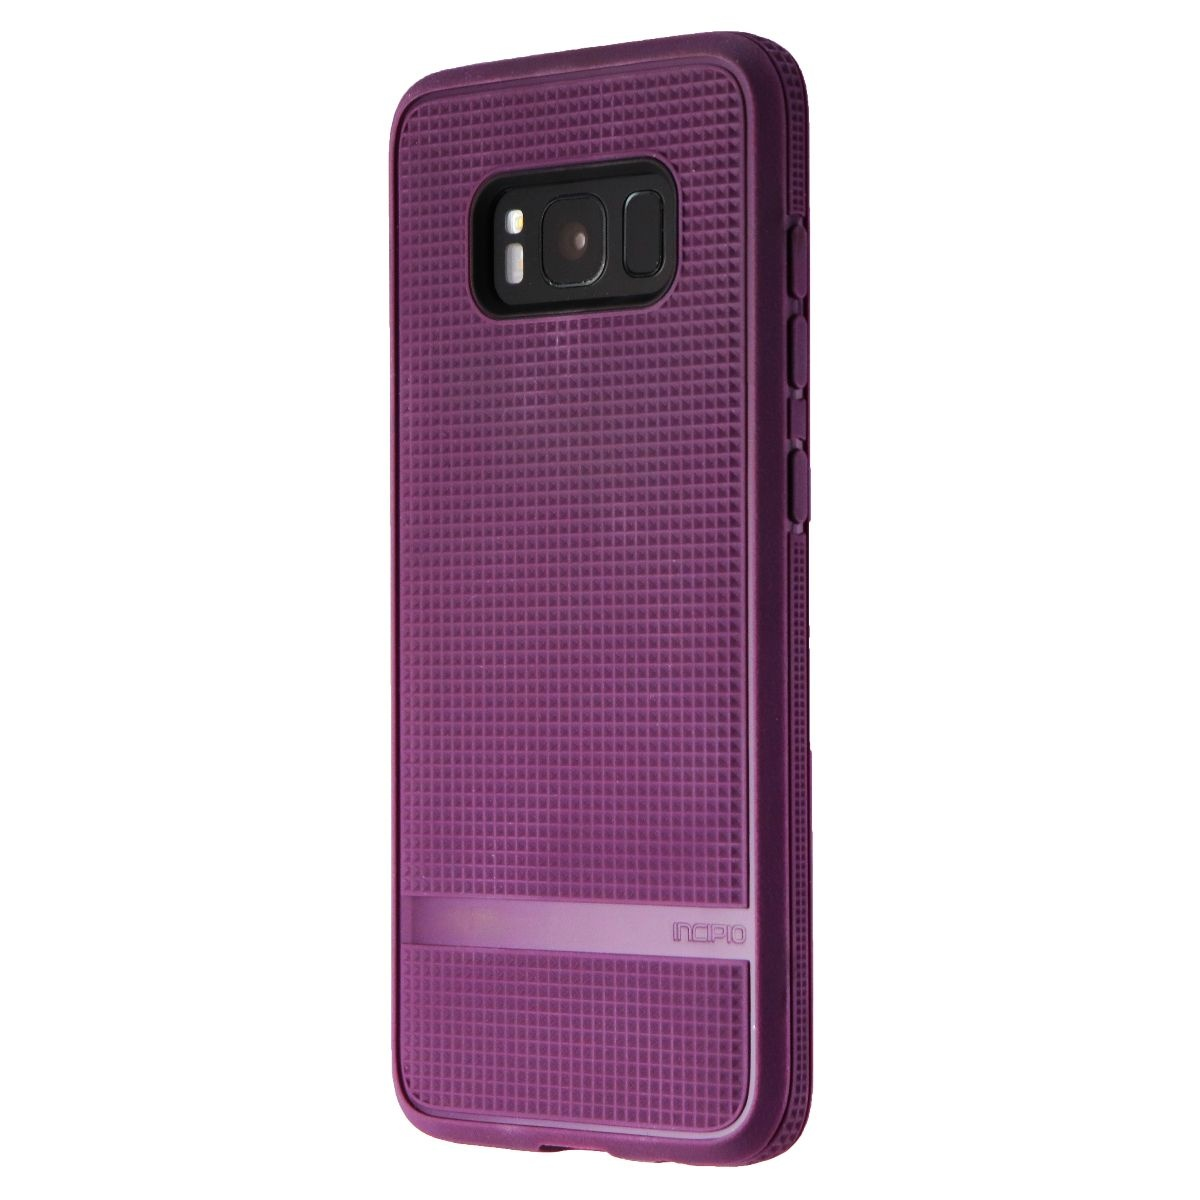 Incipio NGP Advanced Series Gel Case for Samsung Galaxy S8 - Plum Purple